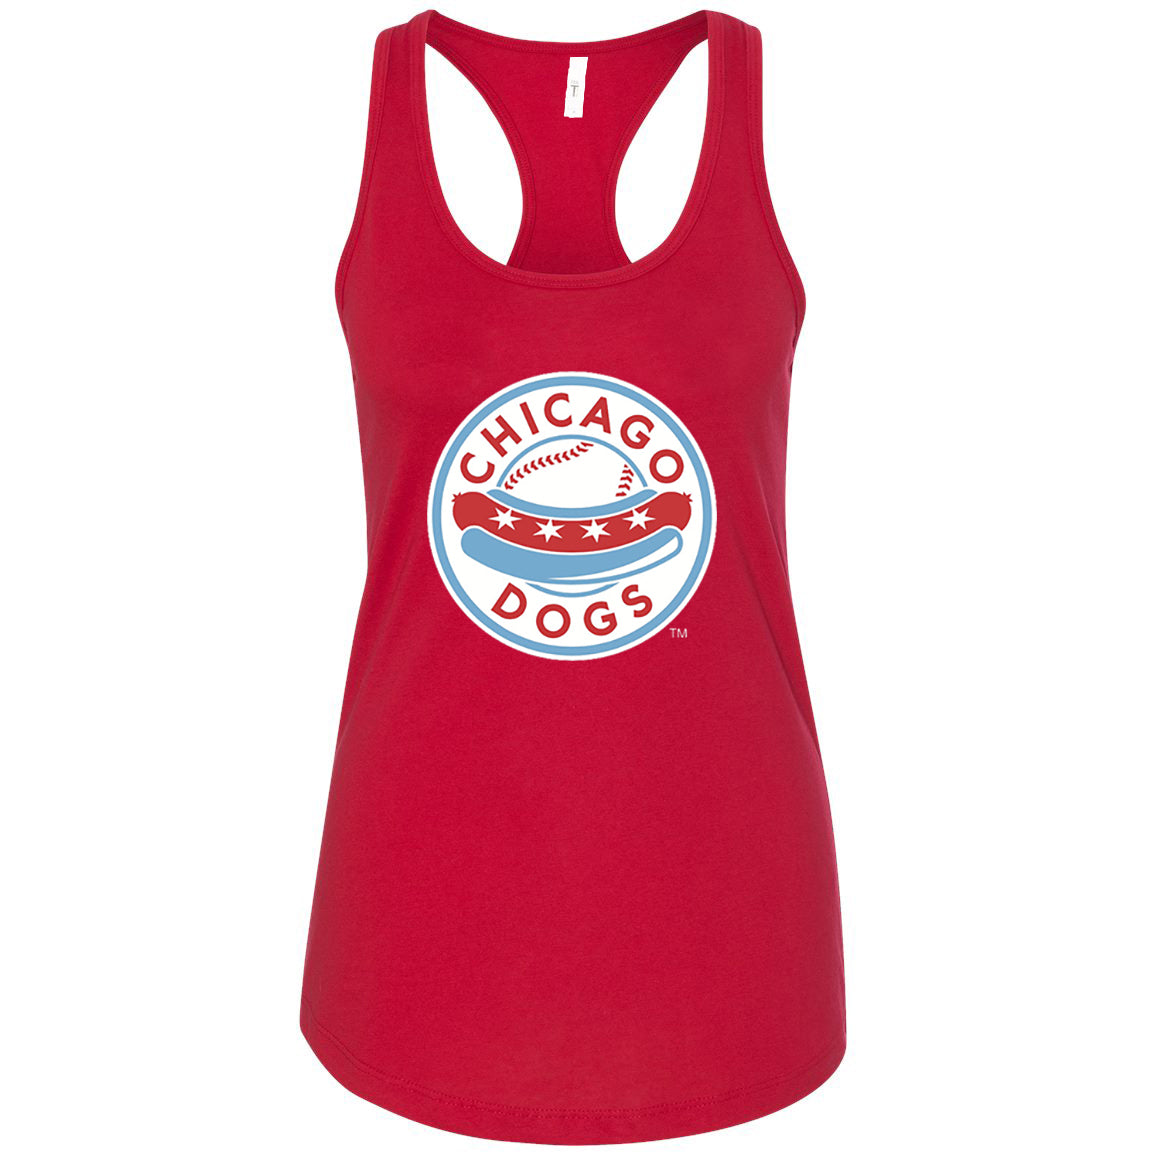 Chicago Dogs Womens Primary Logo Cotton Racerback Tank - Red